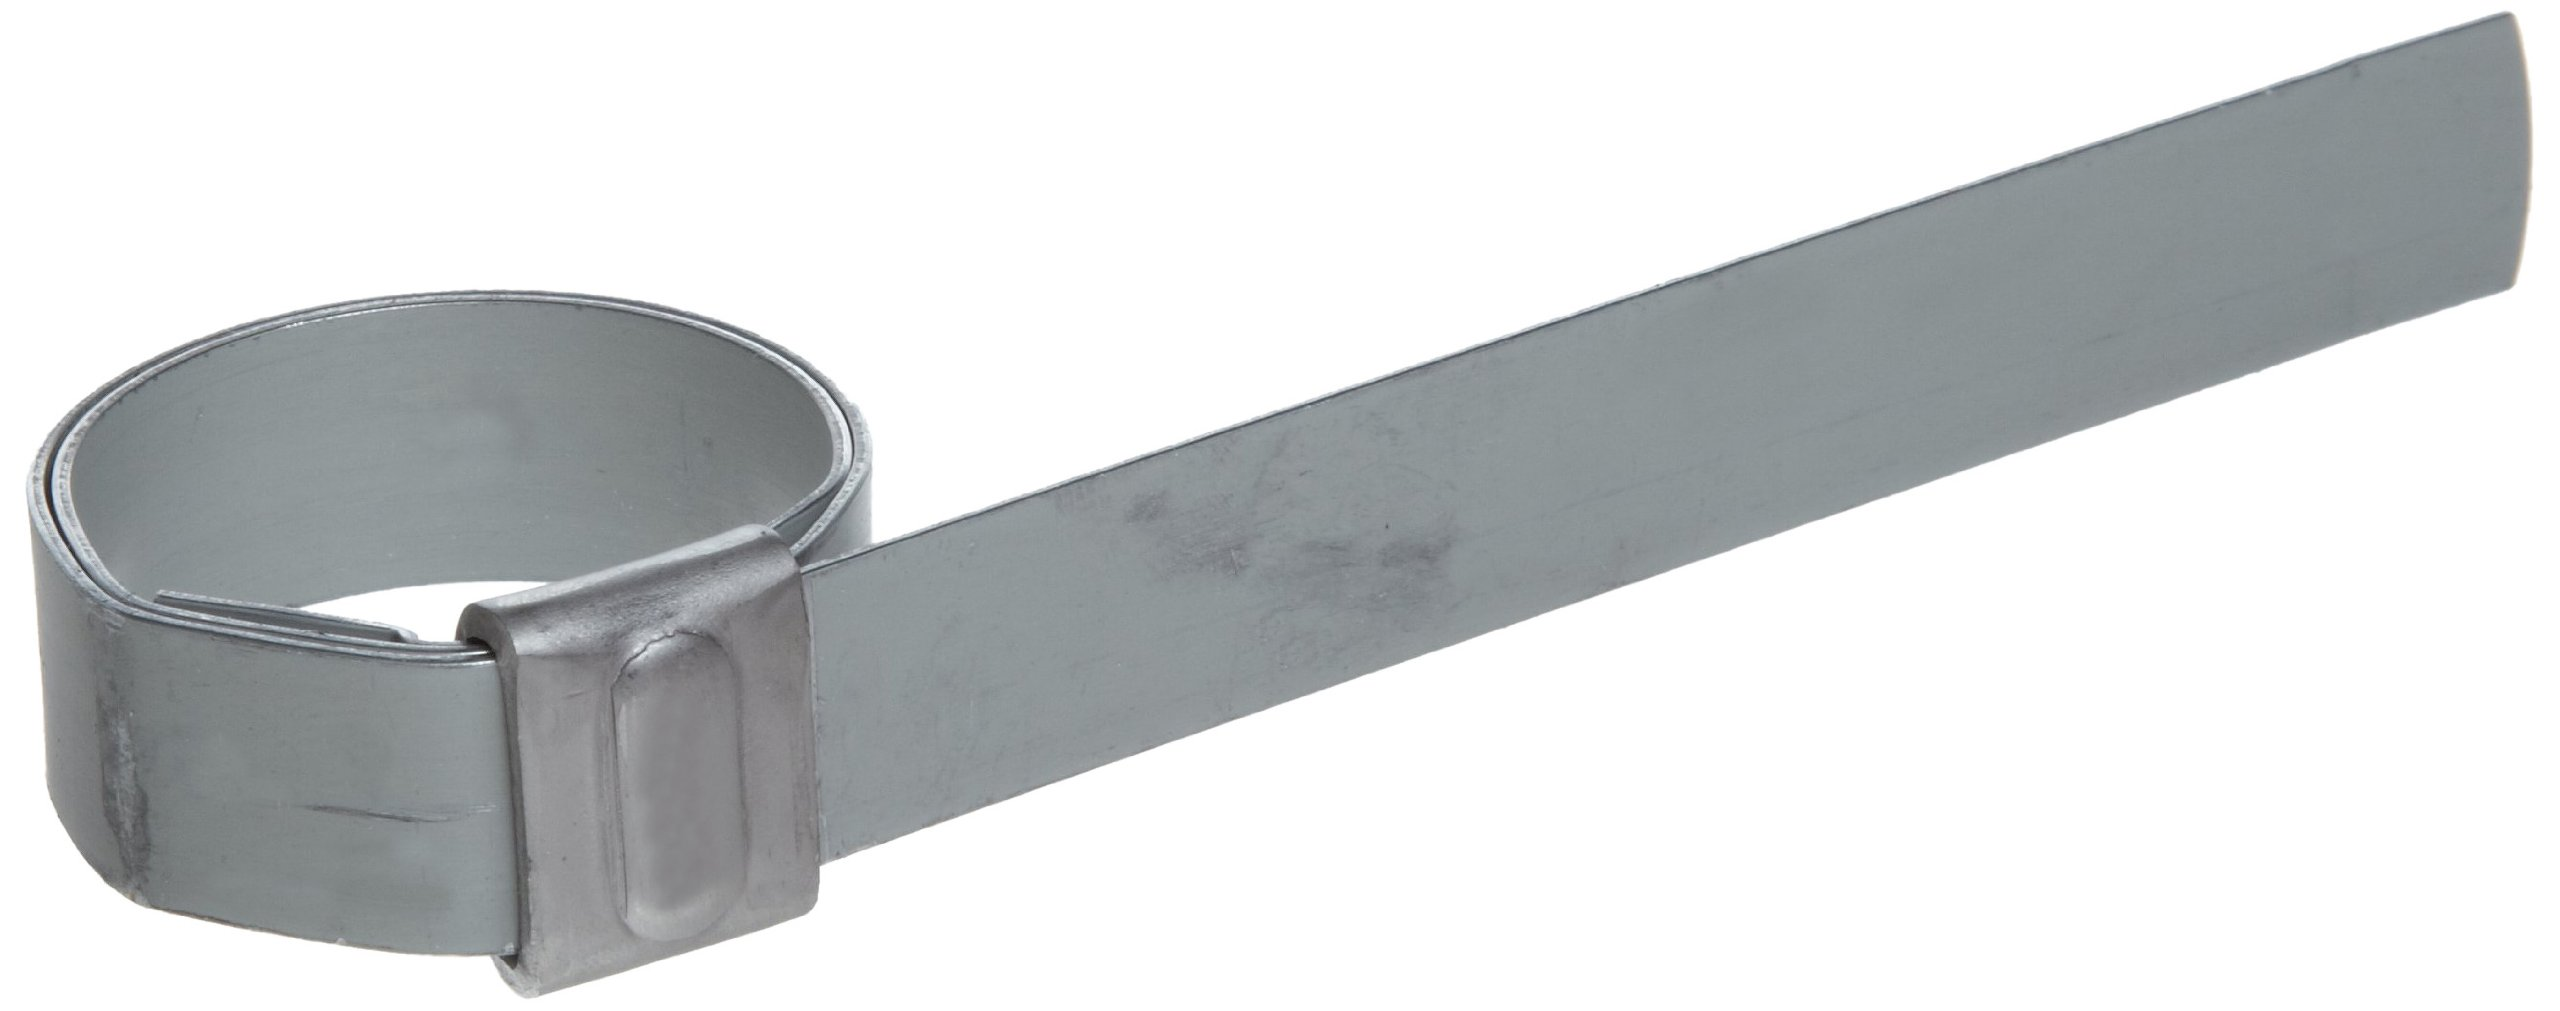 BAND-IT JS3039 Junior 1/2'' Wide x 0.030'' Thick, 1'' Diameter, Galvanized Carbon Steel Smooth I.D. Clamp (100 Per Box)